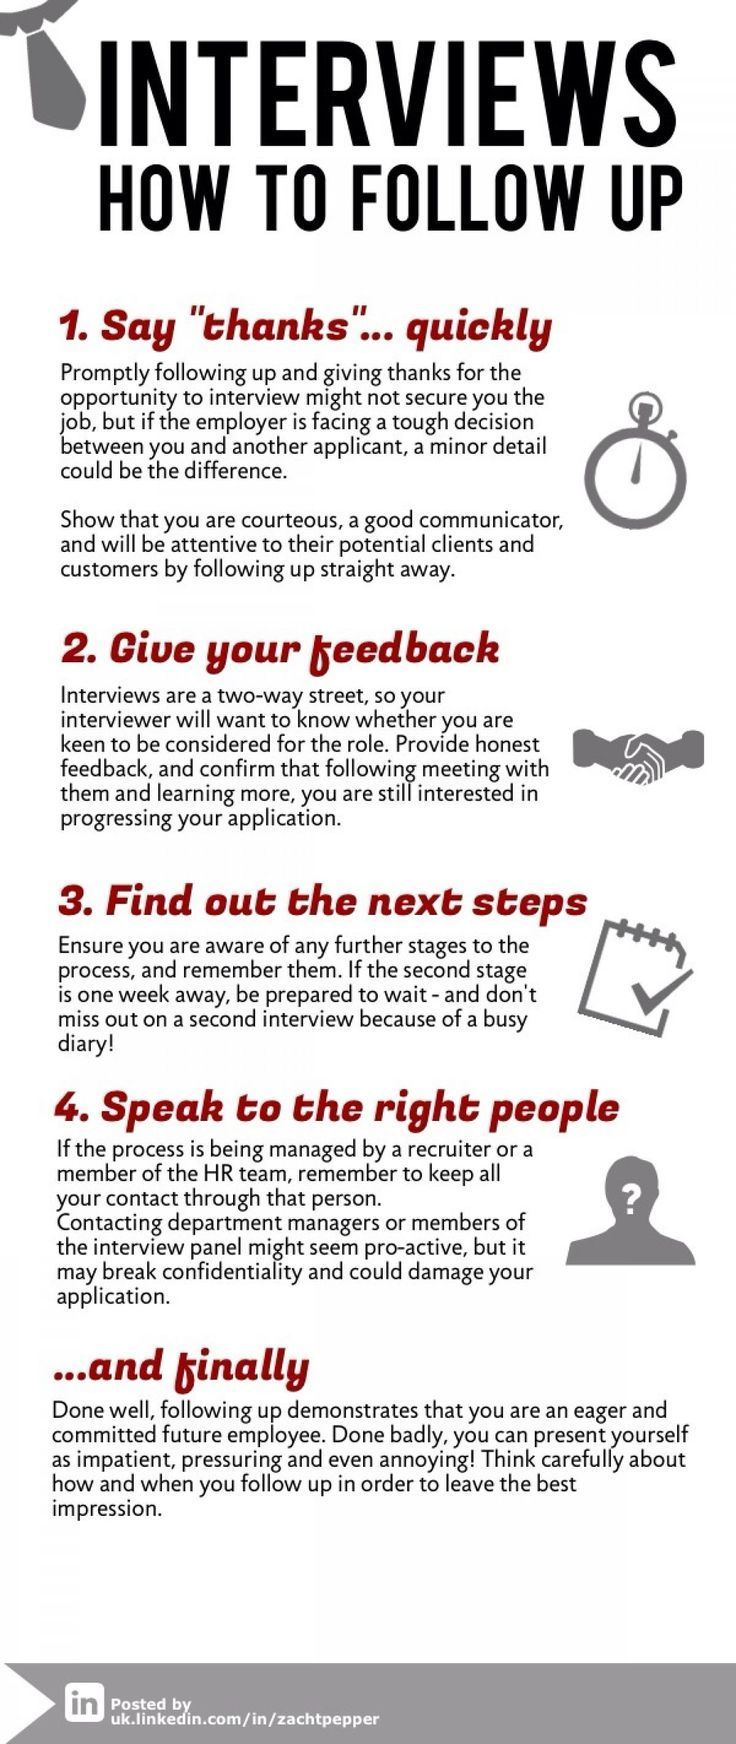 interview tips infographic - Facing An Interview Tips And Techniques